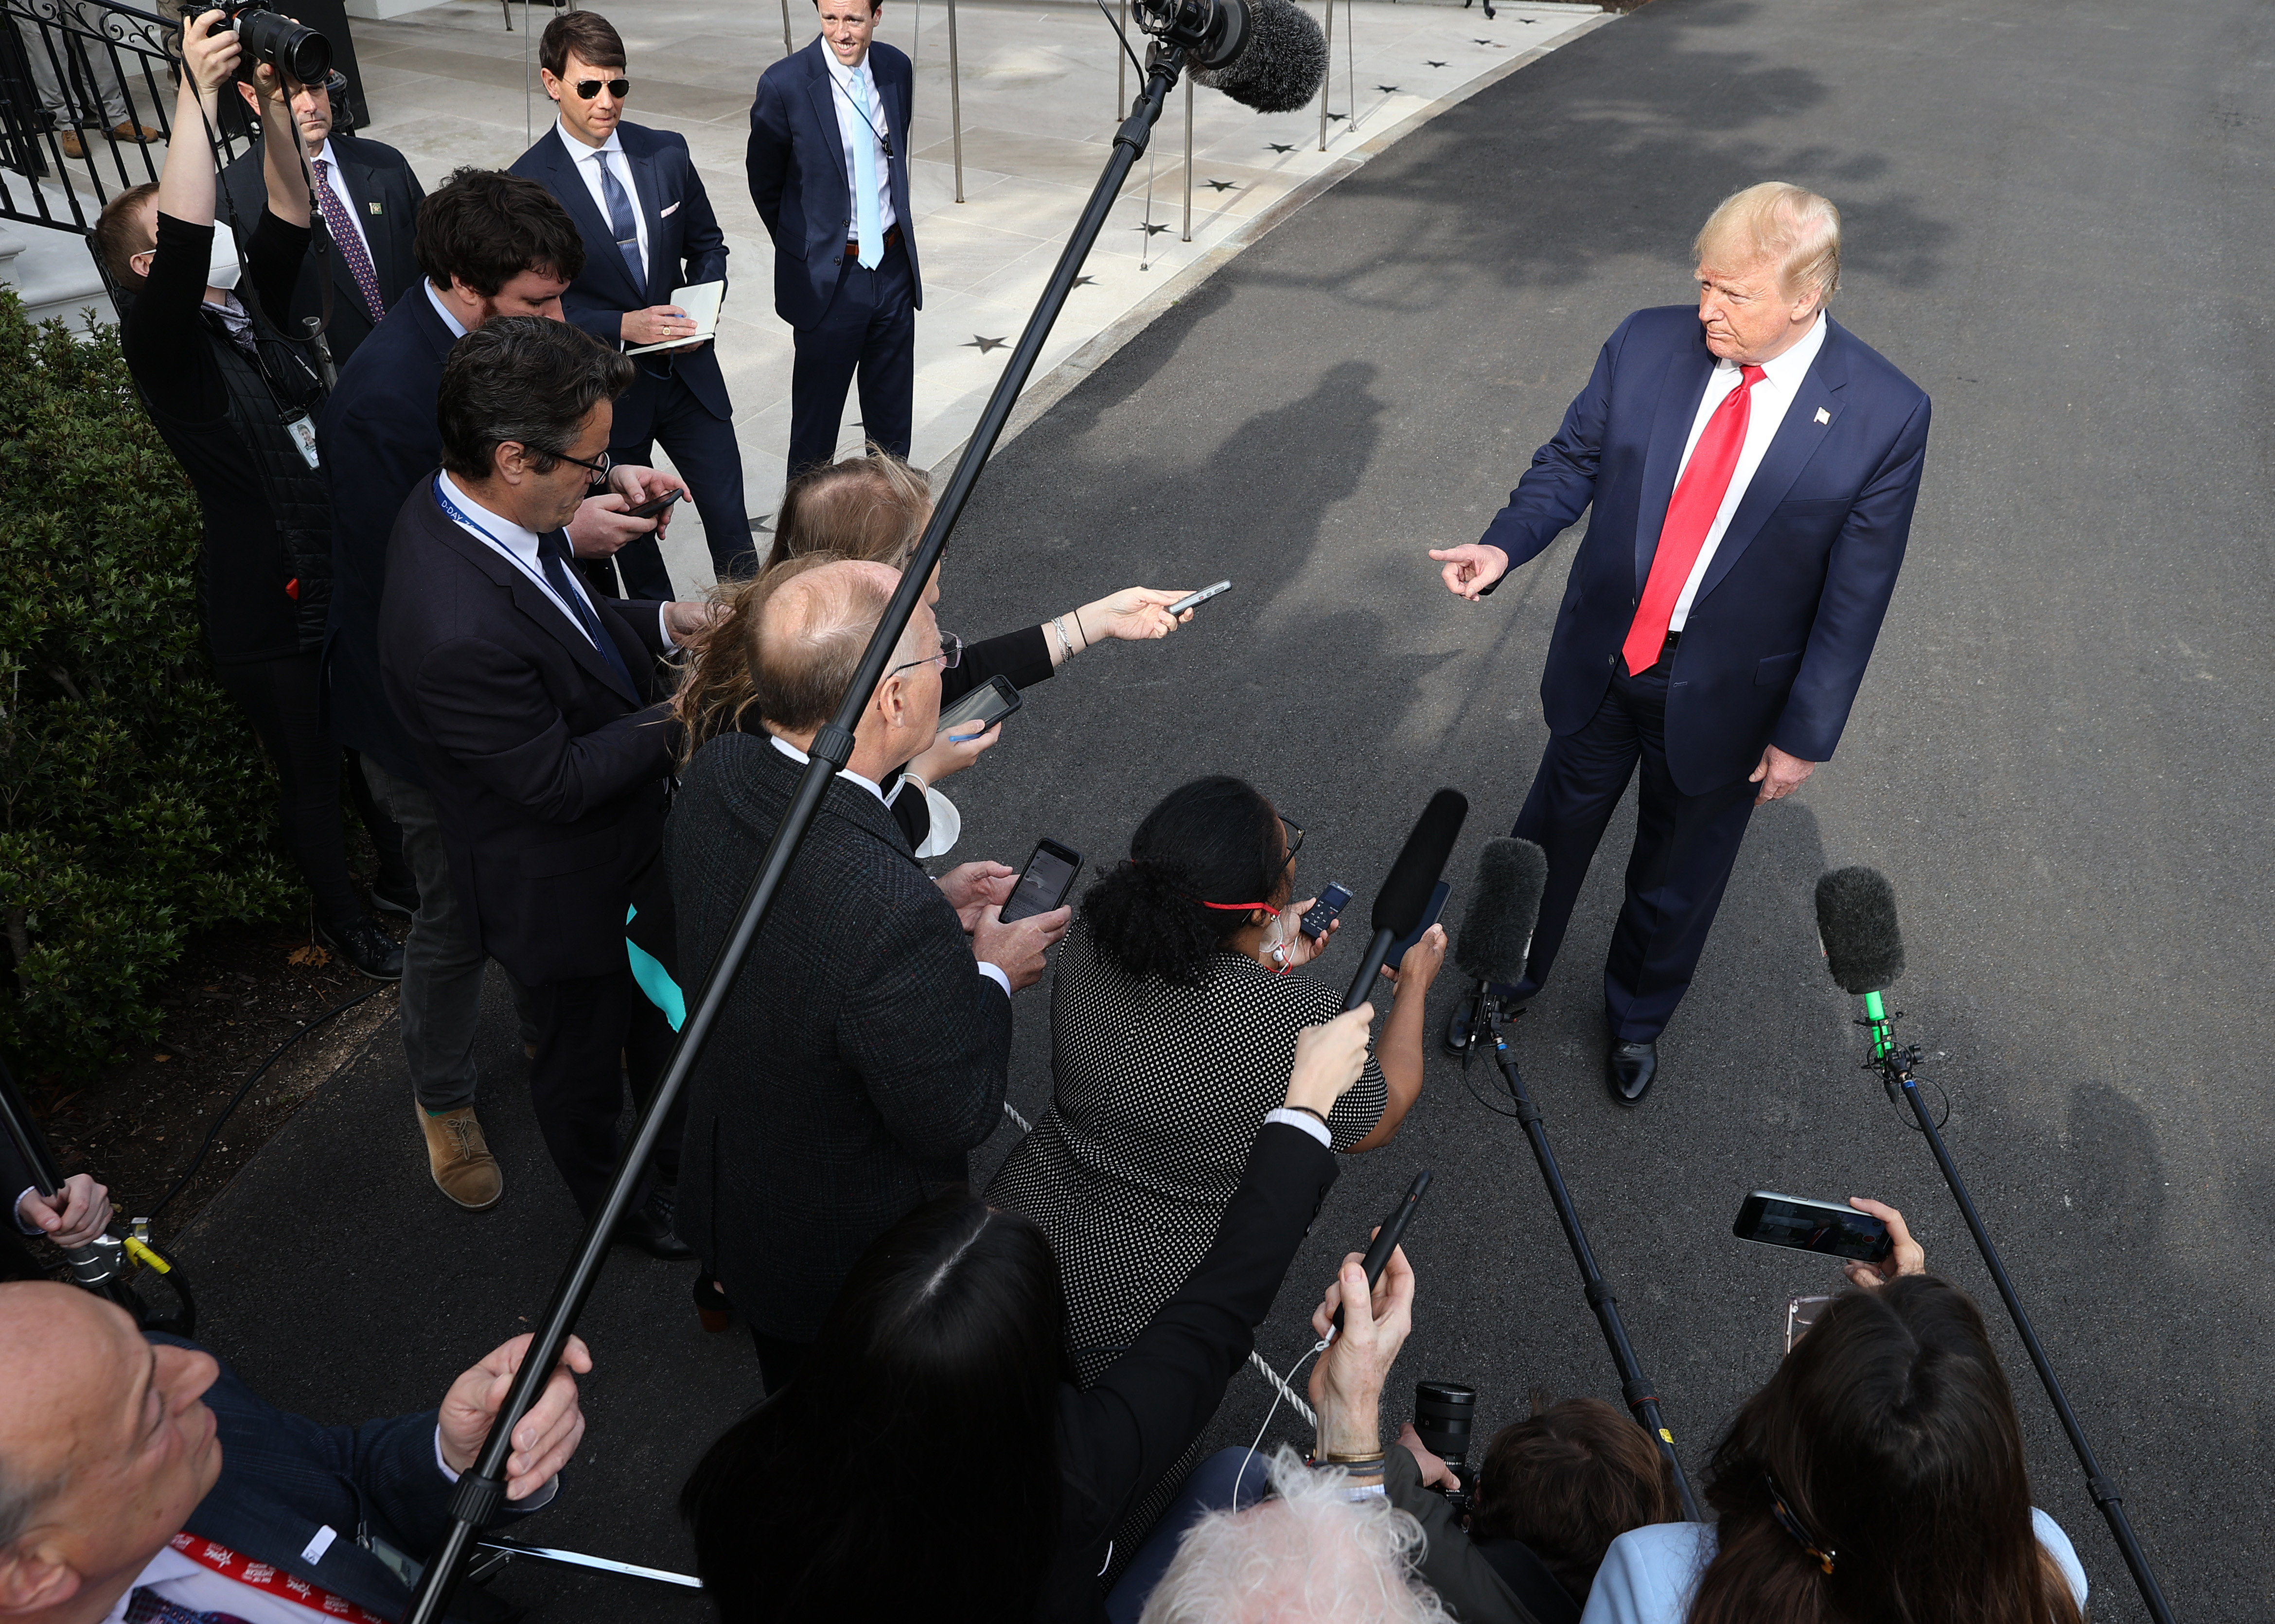 WASHINGTON, DC - MAY 01: U.S. President Donald Trump talks to journalists on the South Lawn while departing the White House for Camp David May 01, 2020 in Washington, DC. According to White House Press Secretary Kayleigh McEnany, Trump will spend a 'working weekend' at the camp outside of Washington with a small group of aides, including chief of staff Mark Meadows and daughter Ivanka Trump. (Photo by Chip Somodevilla/Getty Images)